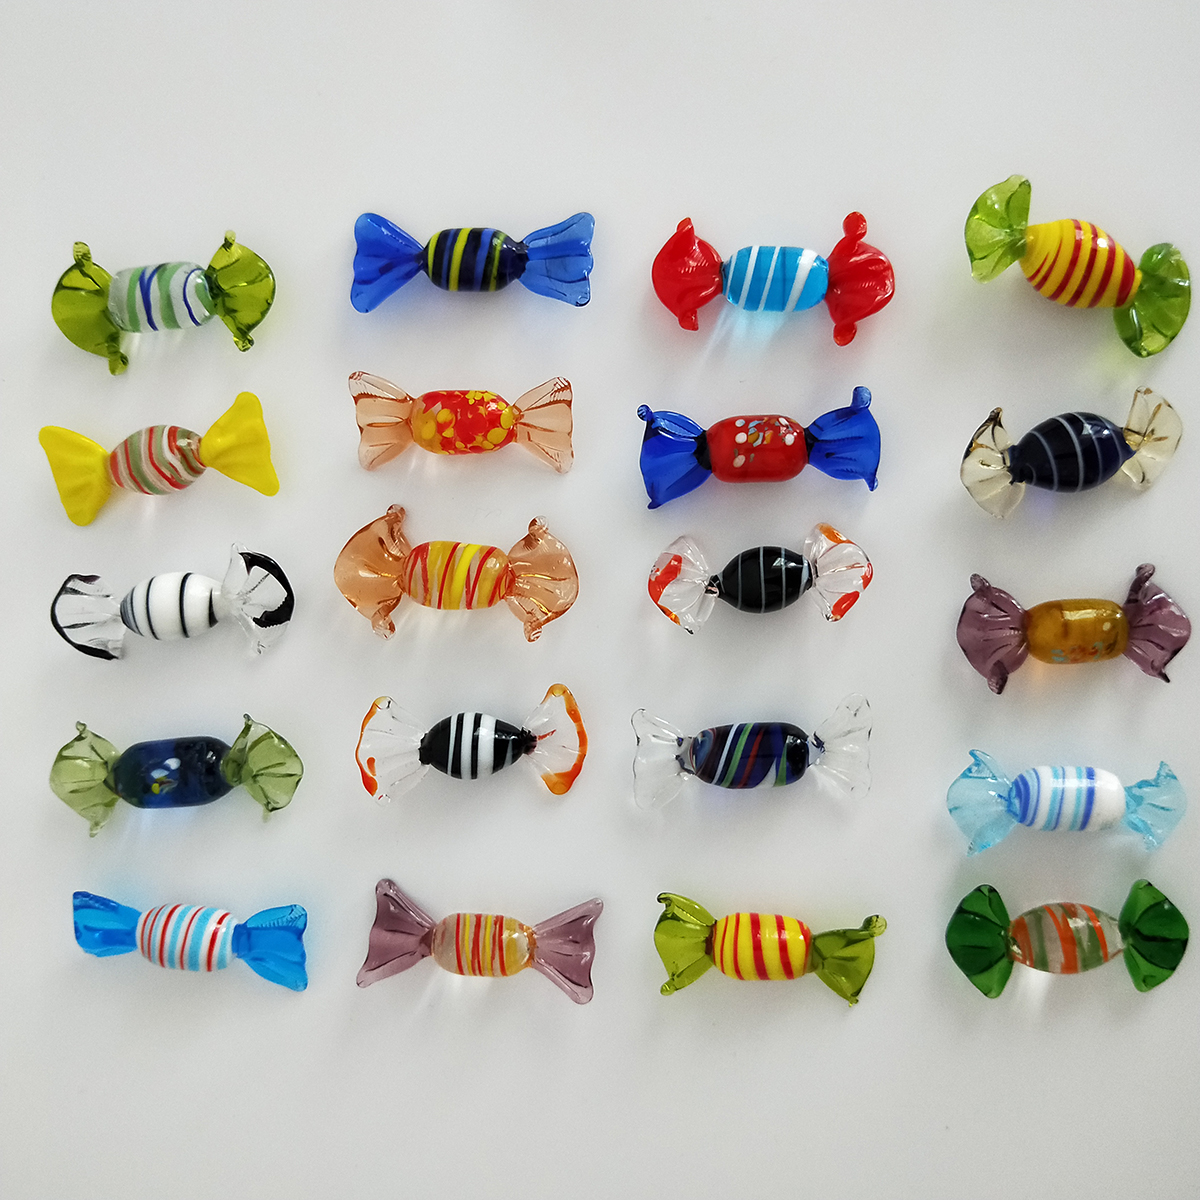 Vintage Murano Glass Sweets Candy 12Pcs/Set Figurines Crafts Random Colors Christmas Ornament Kids Gifts Party Decorations